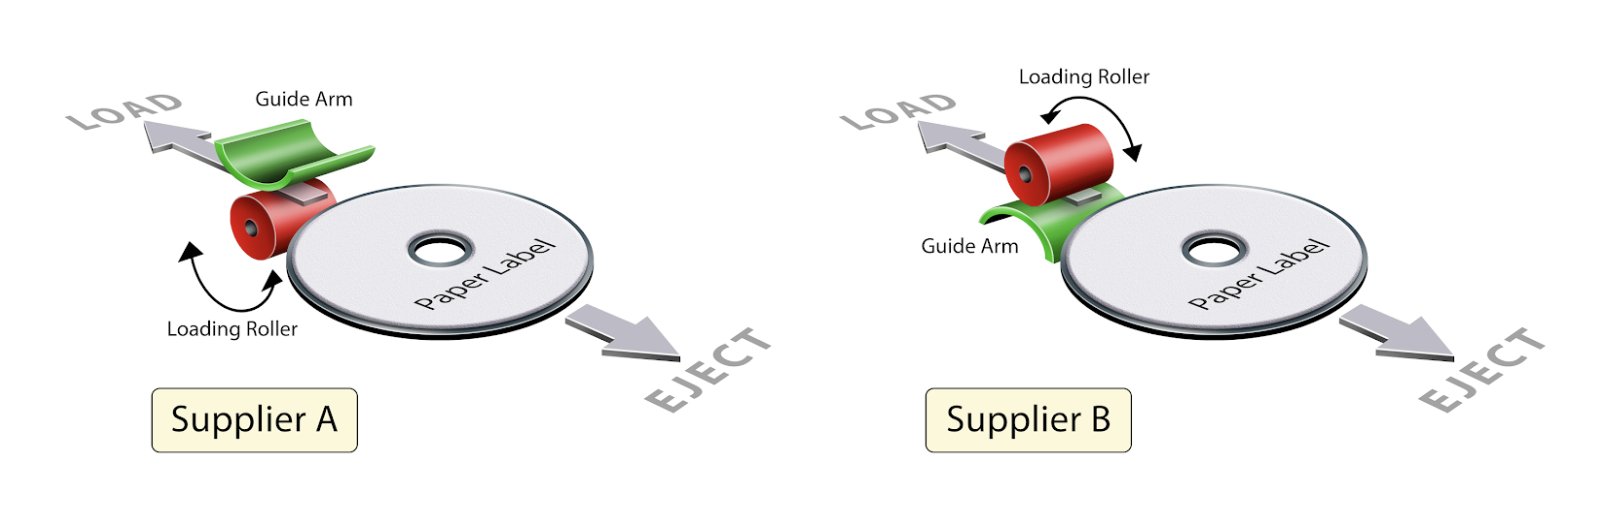 Figure 3. Two categories of CD players loading and ejecting a CD with paper label